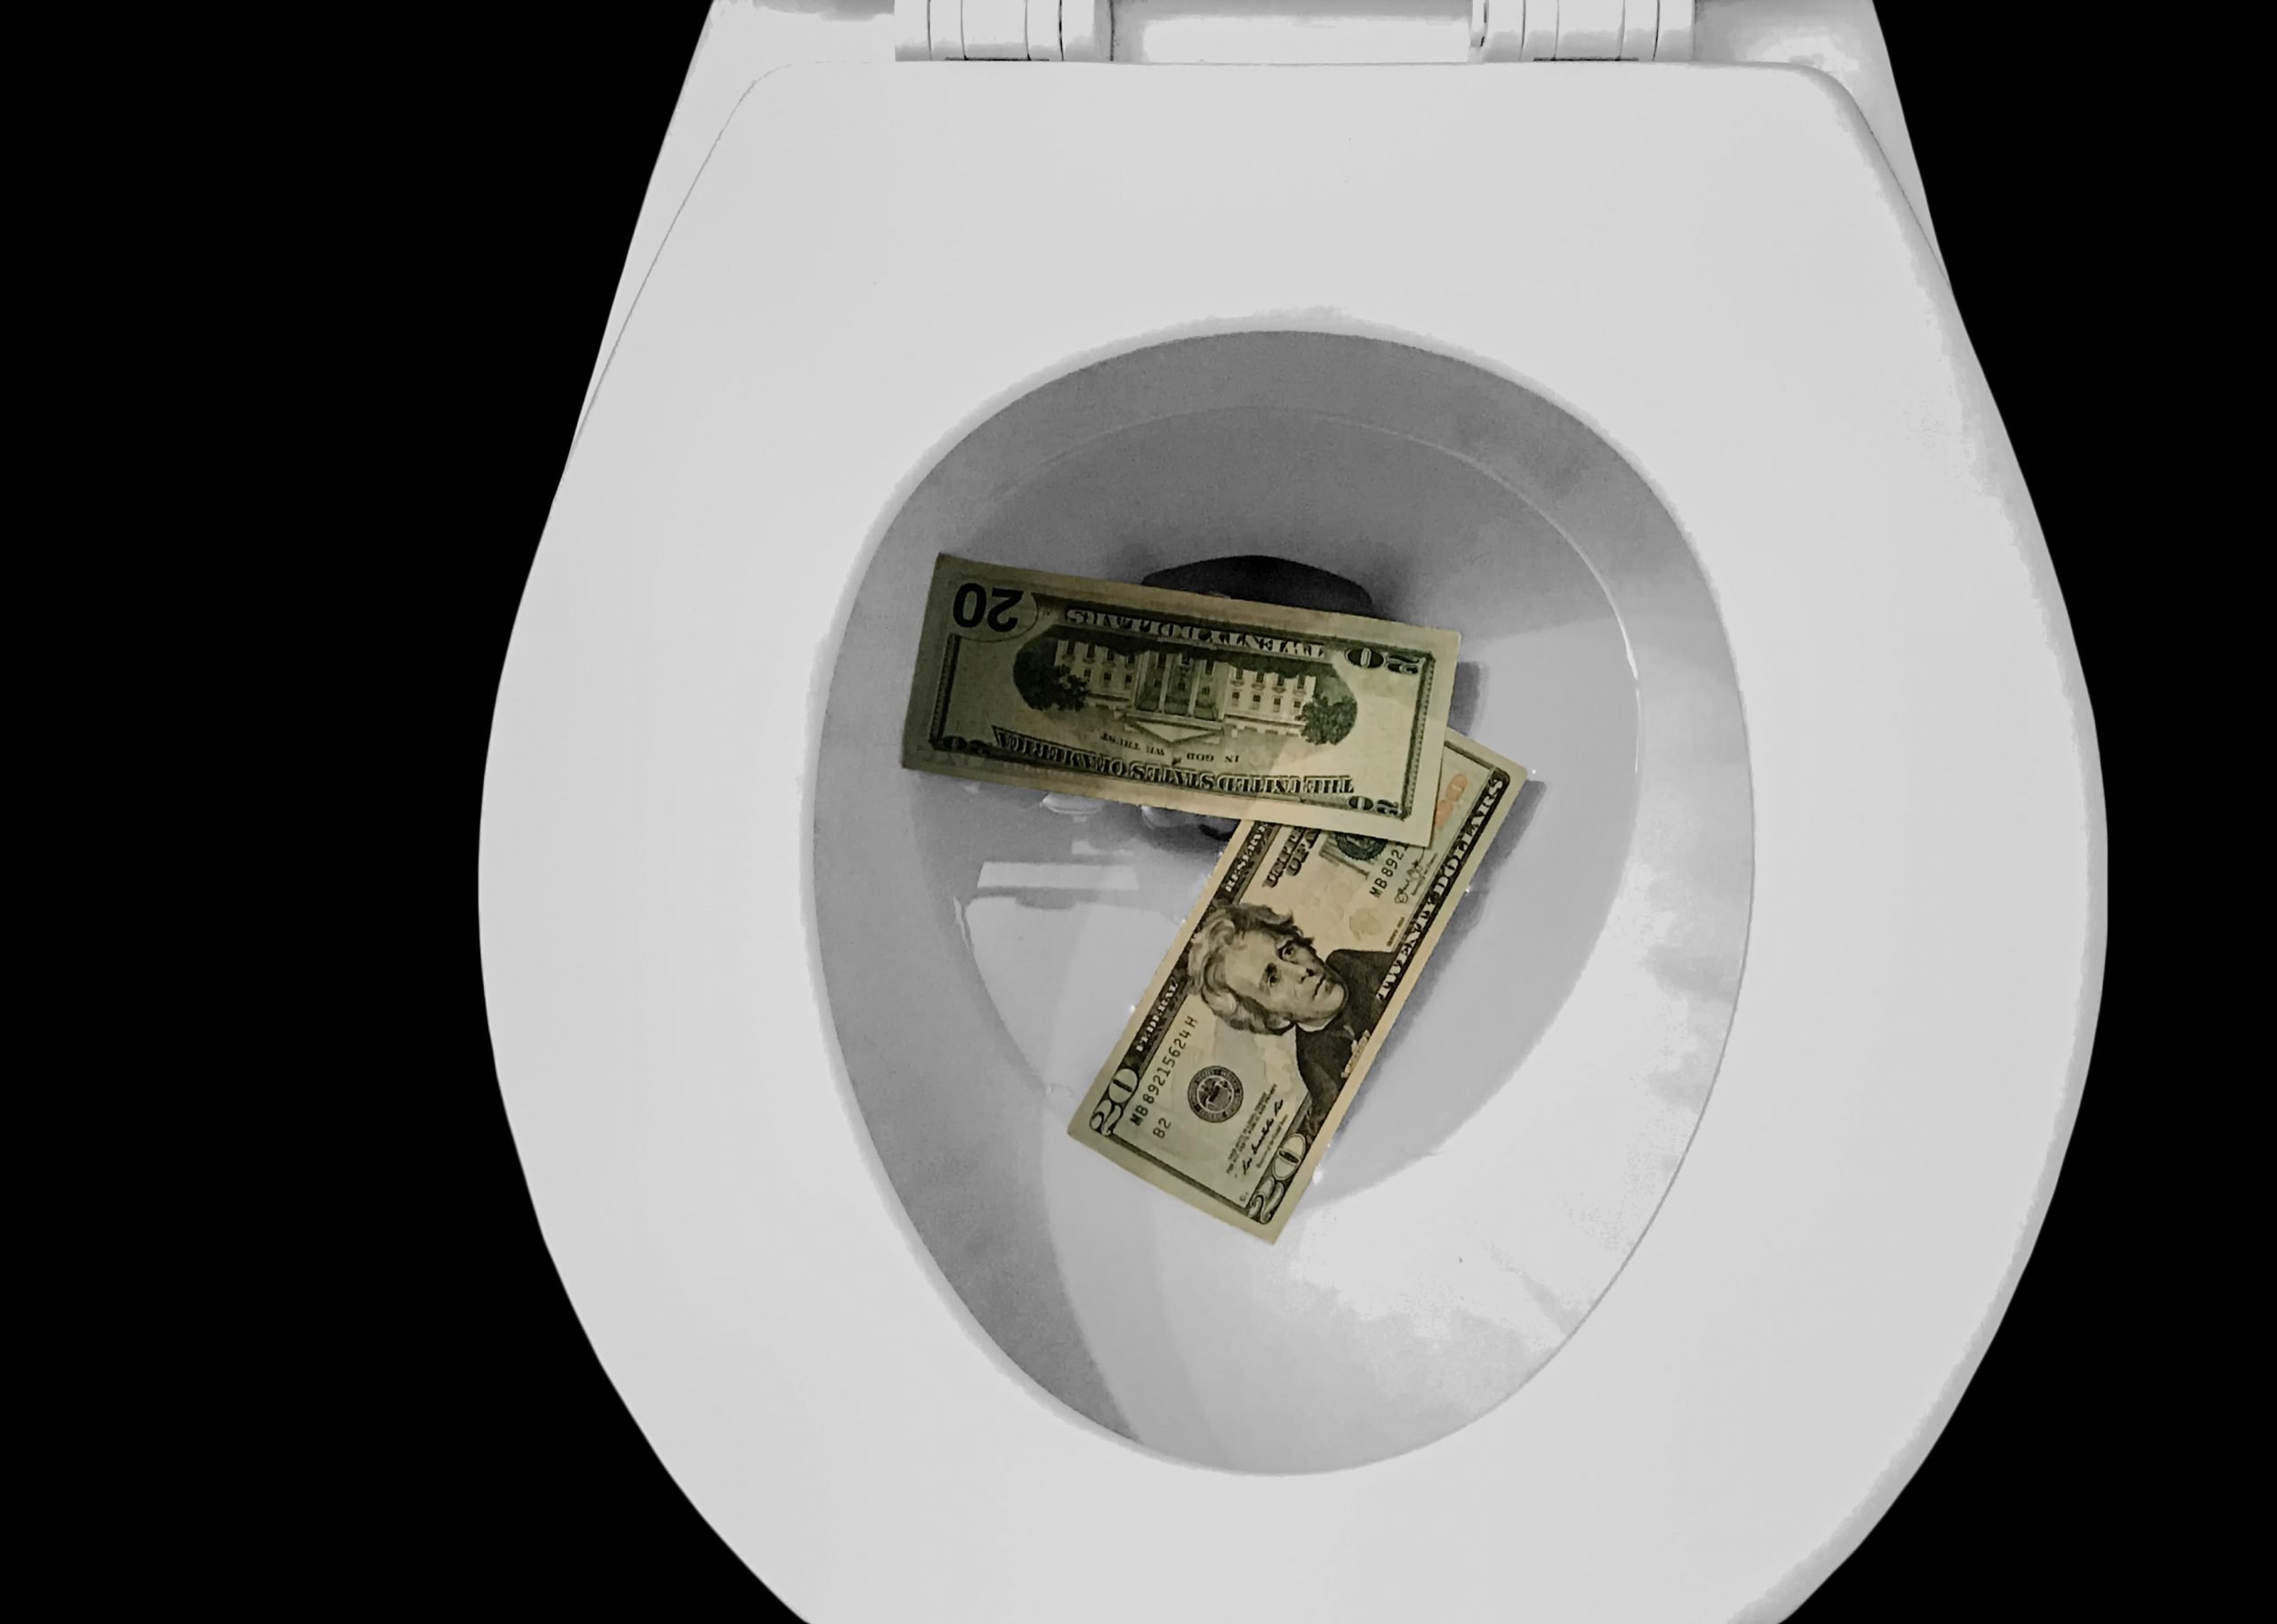 Toilet bowl with cash money in it